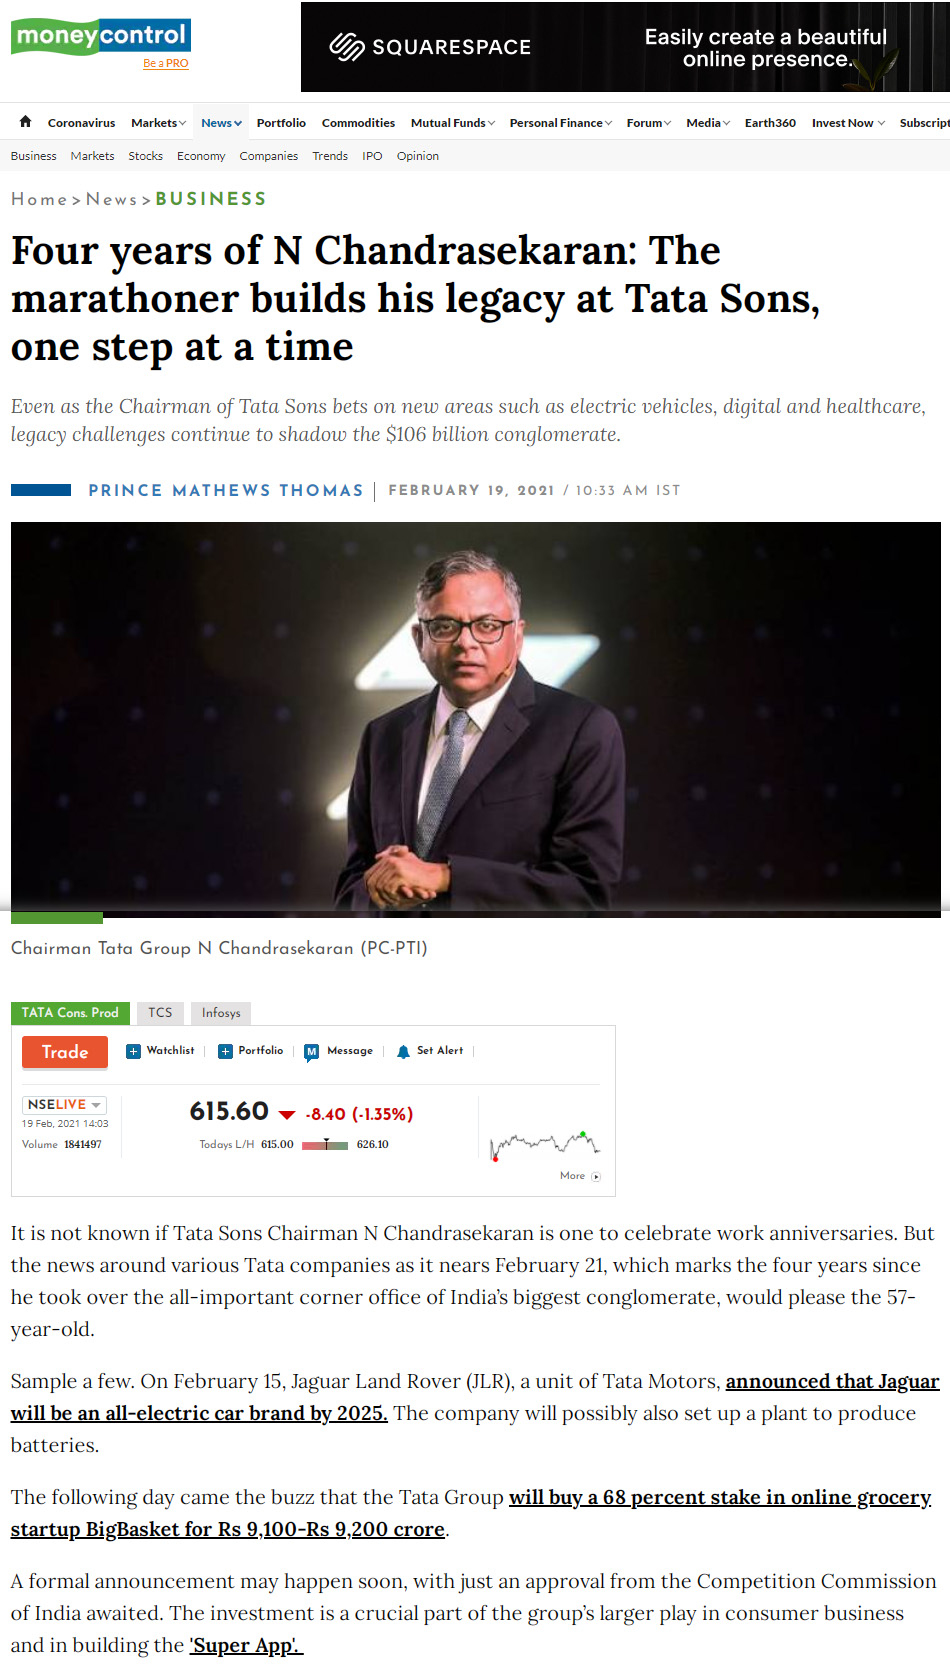 Four years of N Chandrasekaran: The marathoner builds his legacy at Tata Sons, one step at a time